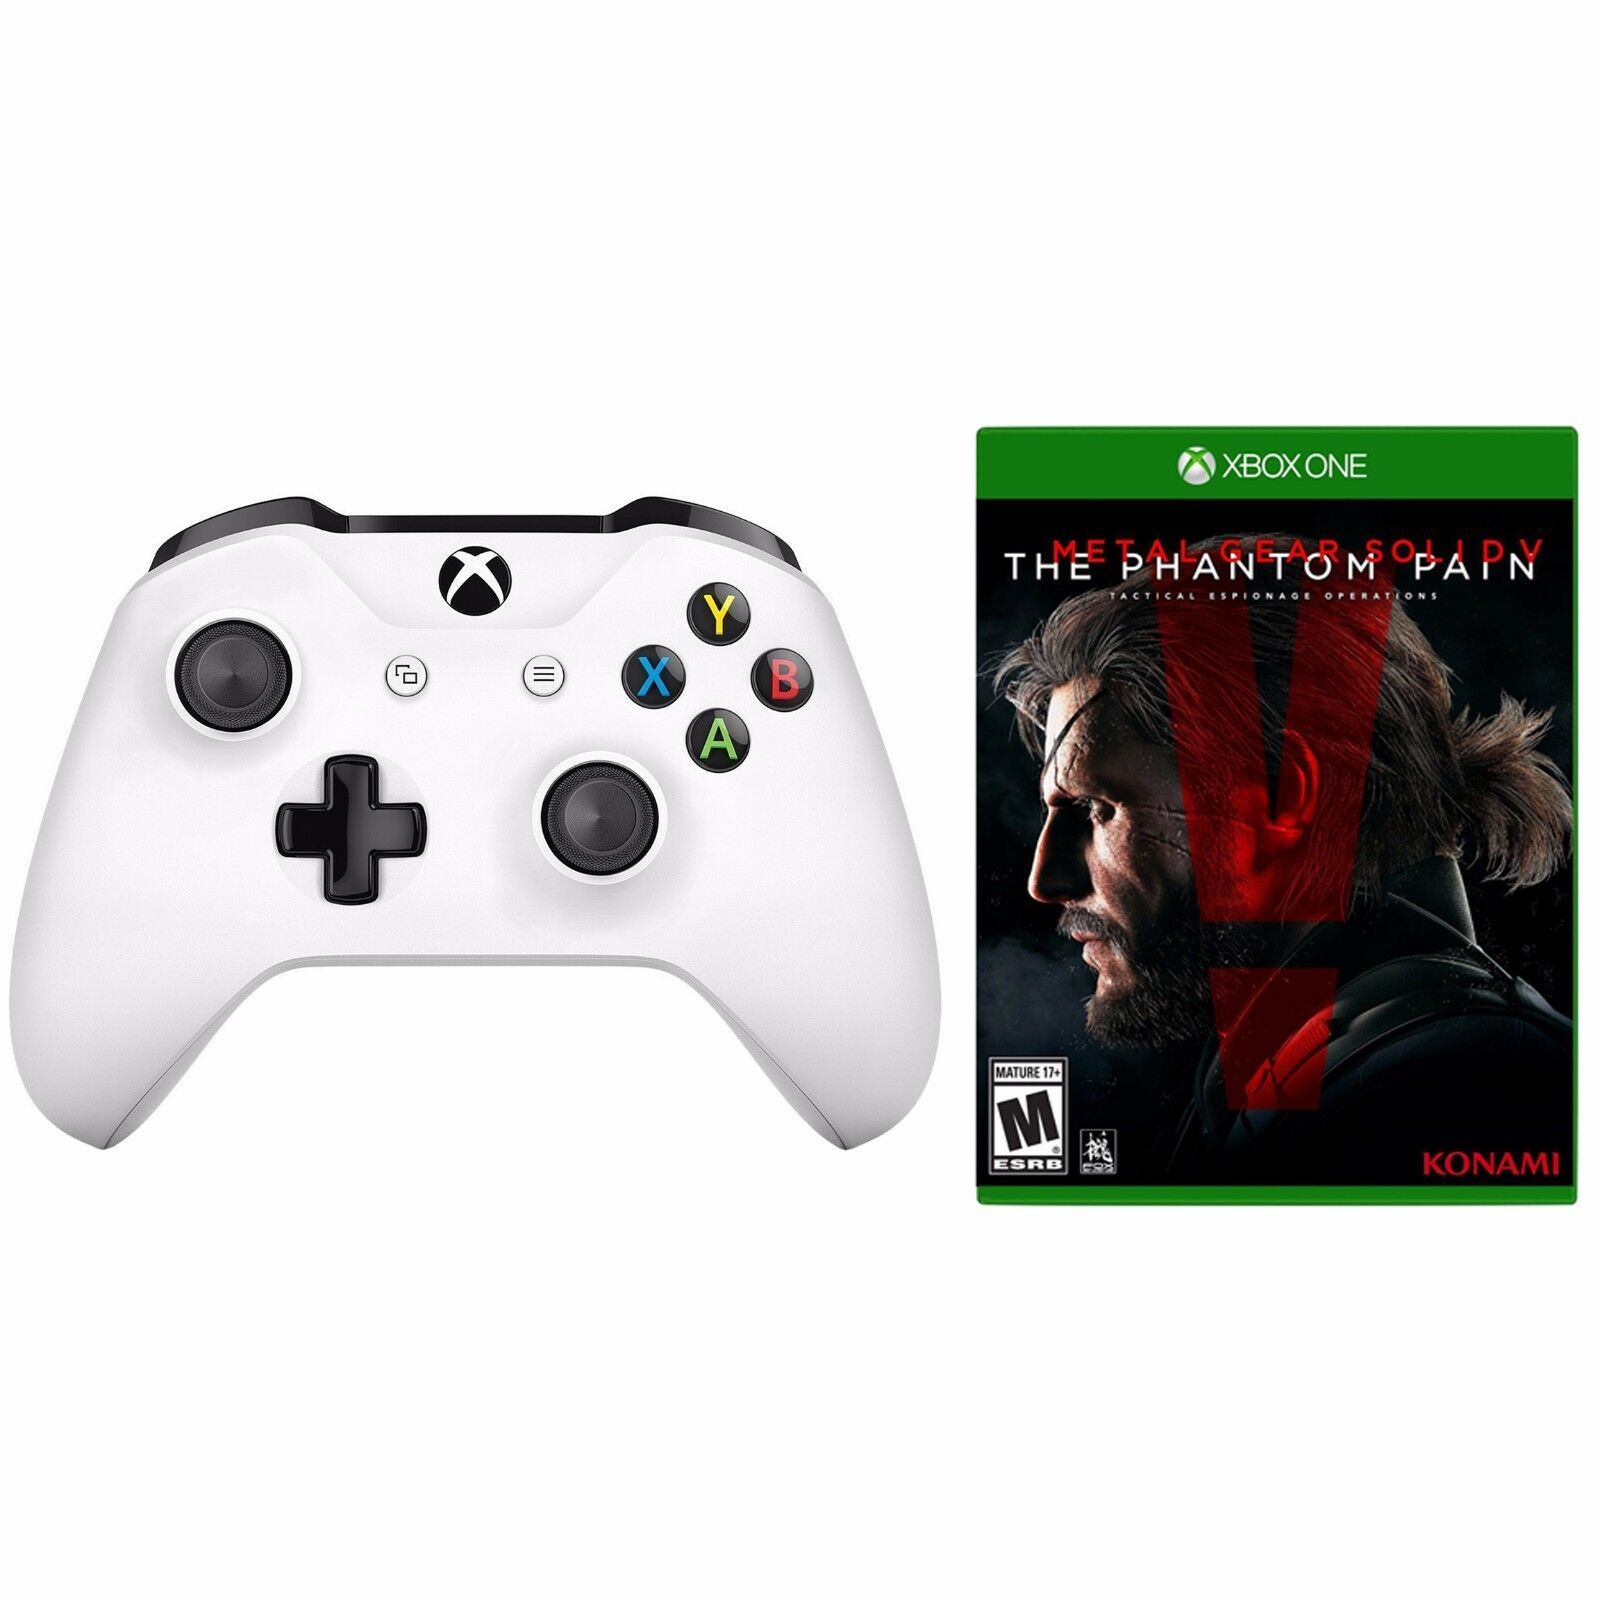 Xbox One S Wireless Controller (white) + Metal Gear Solid V: Phantom Pain Bundle